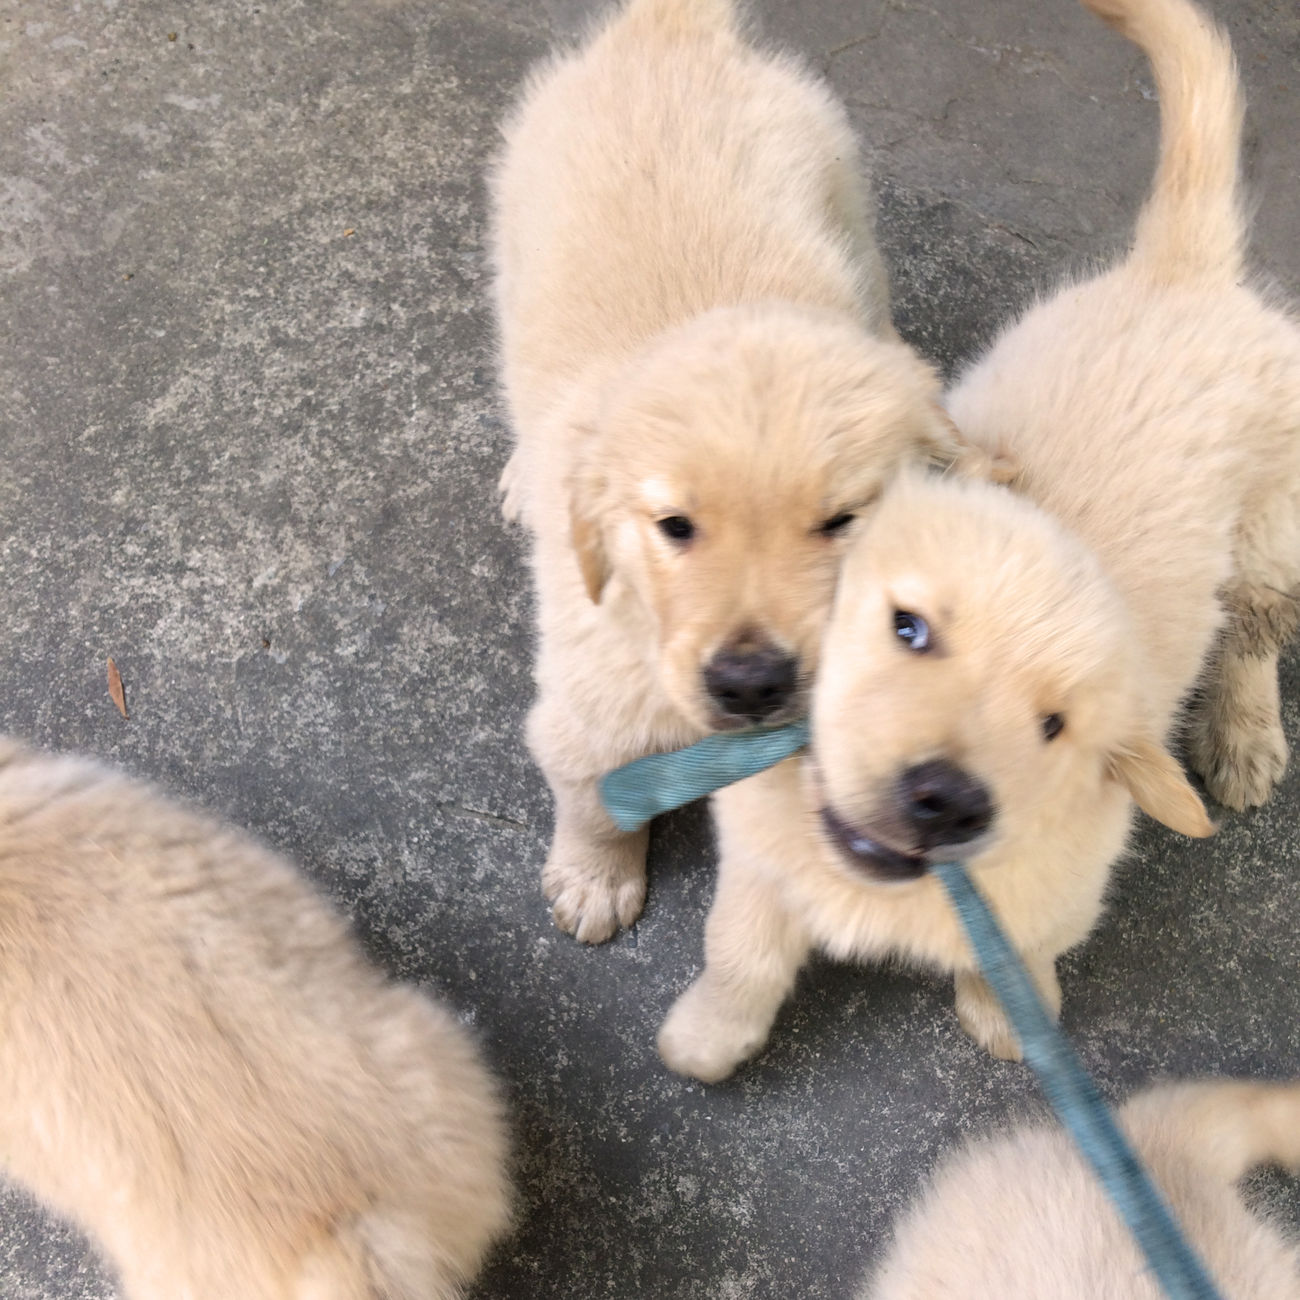 Animal Themes Close-up Day Dog Domestic Animals Funny Golden Retriever Goldenretriever Looking At Camera Mammal No People Outdoors Pets Playing Portrait Puppies Puppy Togetherness Young Animal